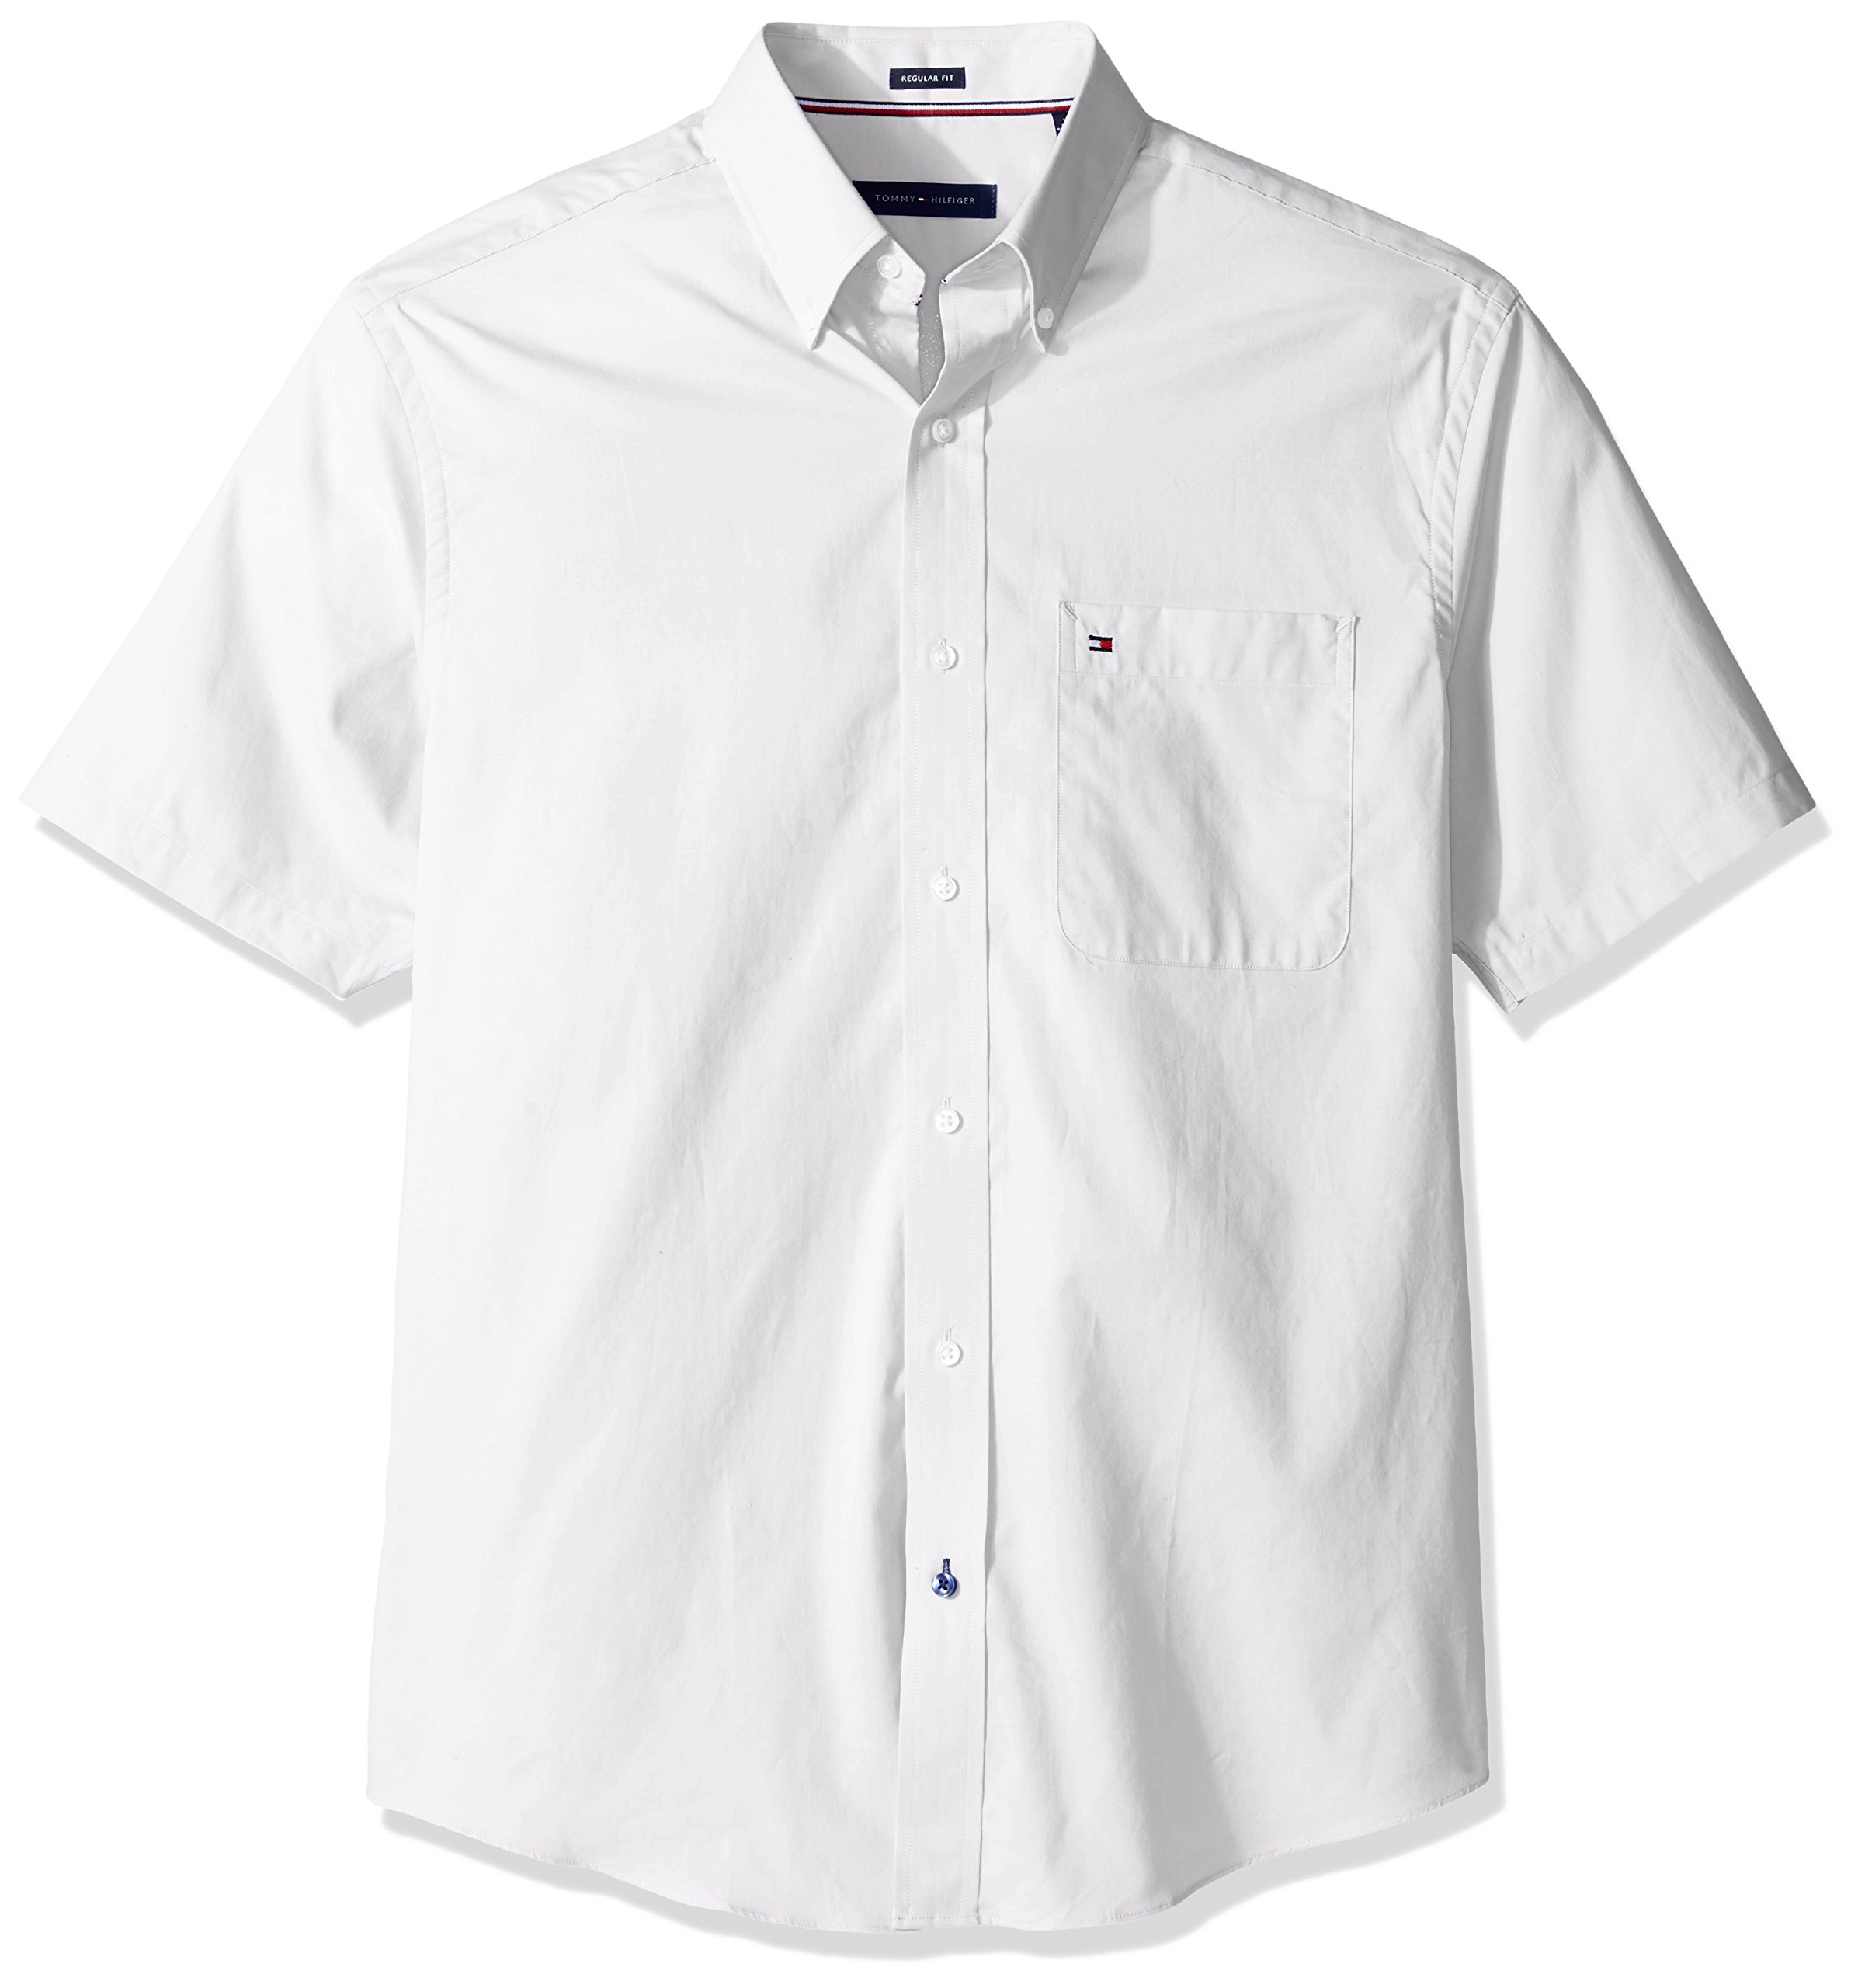 Tommy Hilfiger Men's Big and Tall Short Sleeve Button-Down Shirt, White, 18.5'' Neck by Tommy Hilfiger (Image #1)